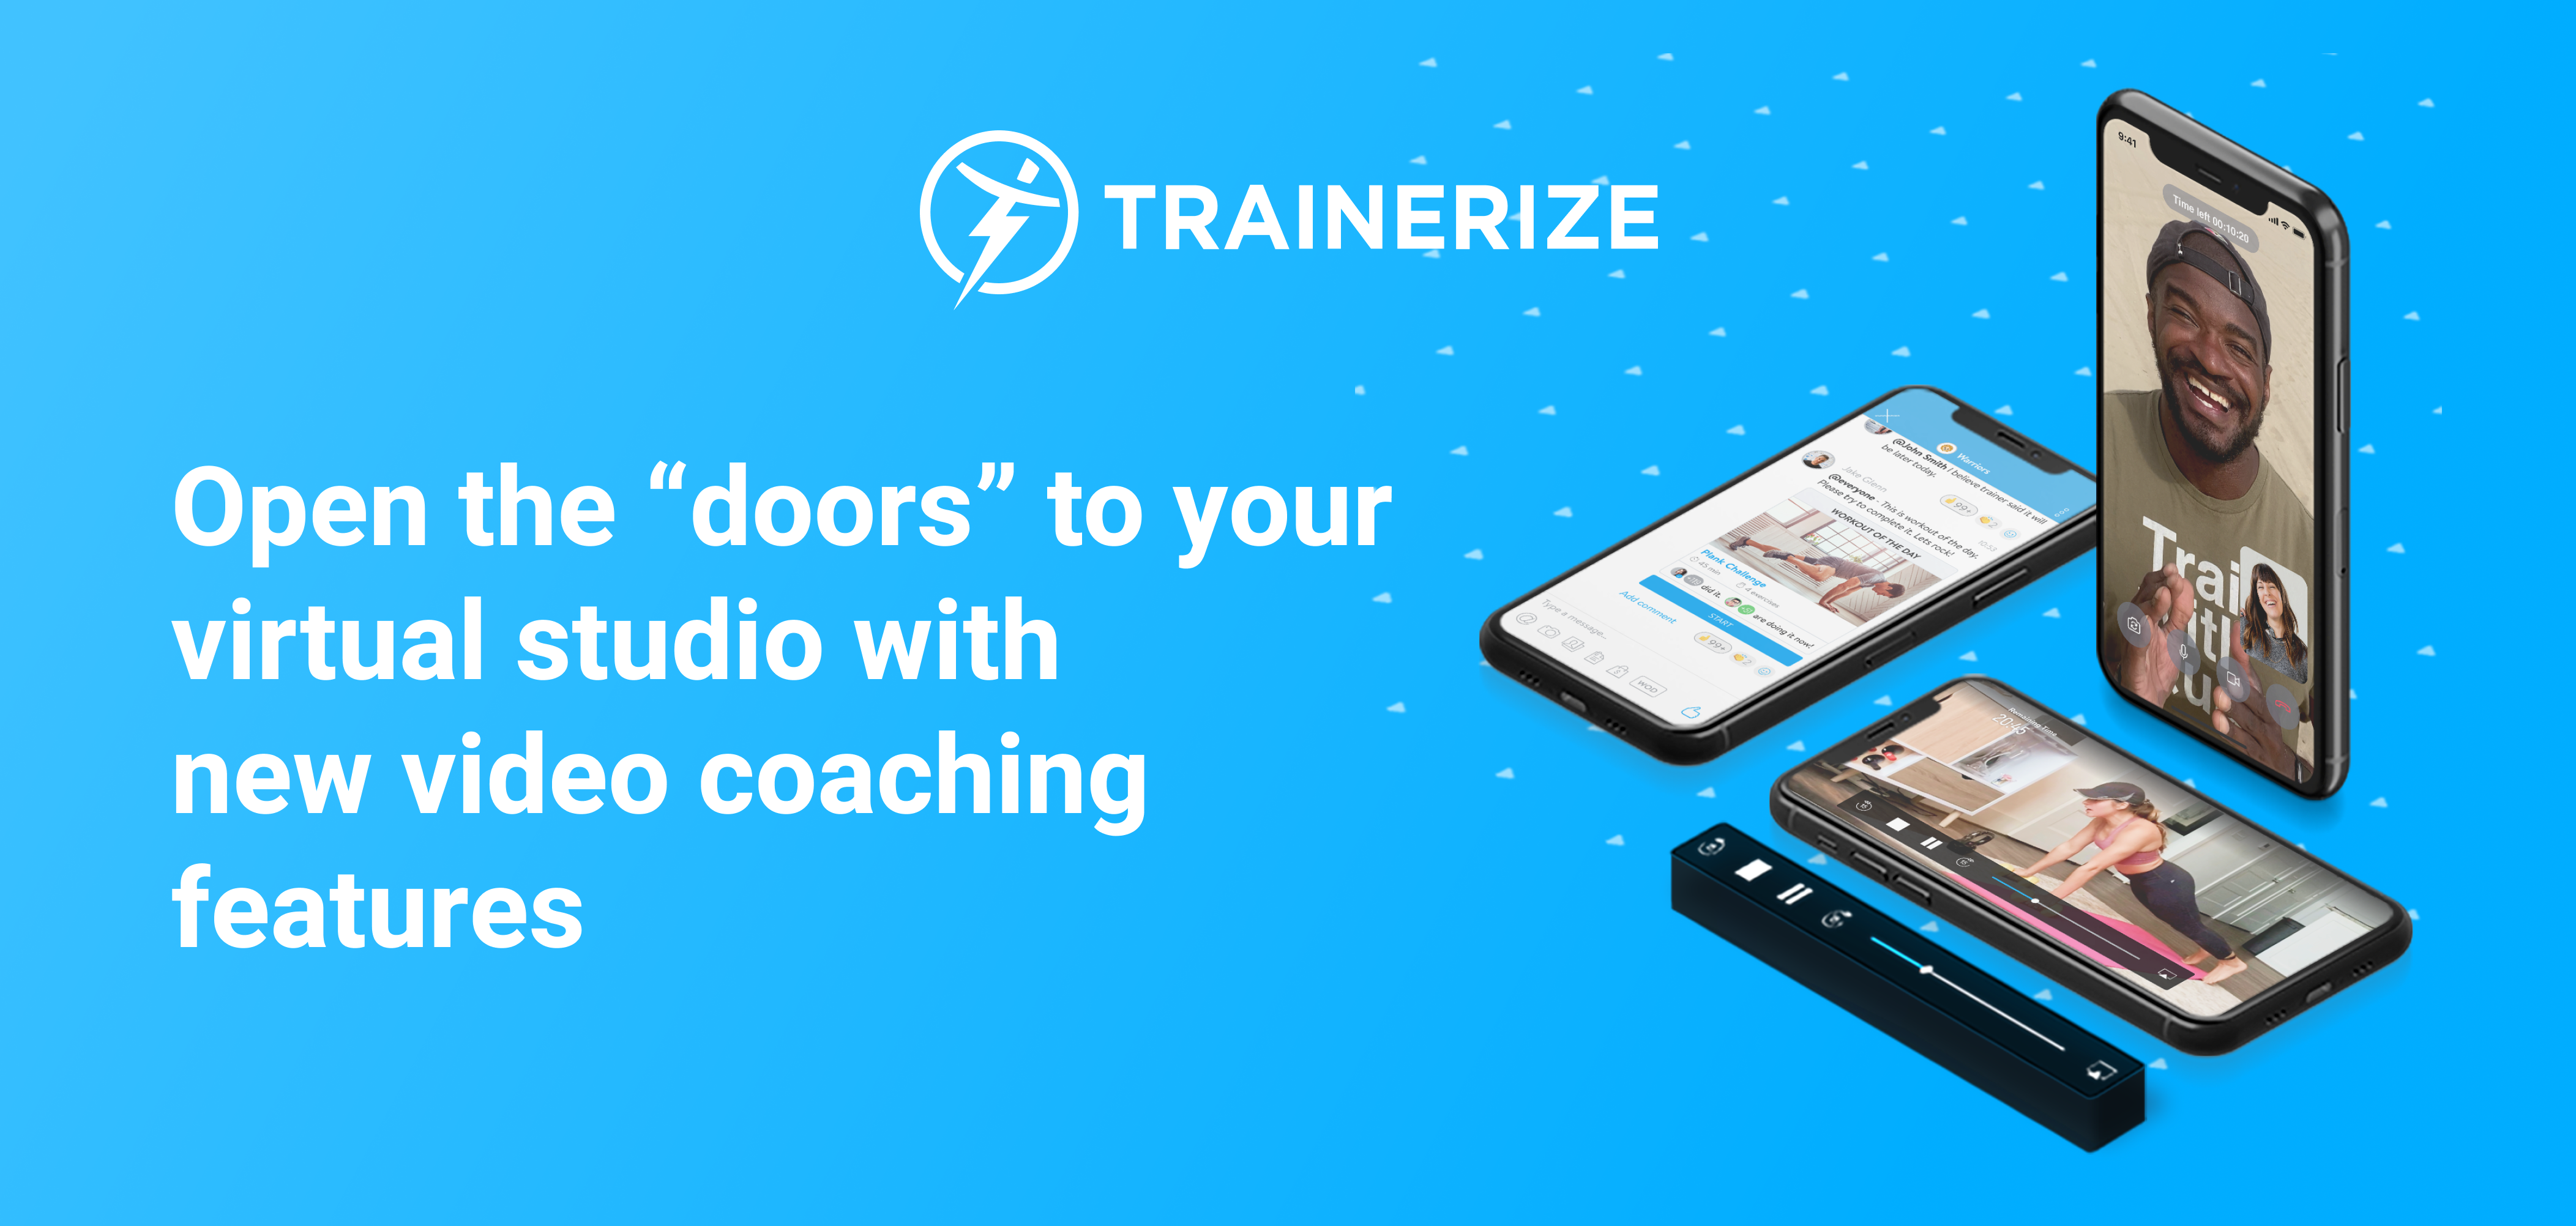 Trainerize Introduces New Video Coaching Features